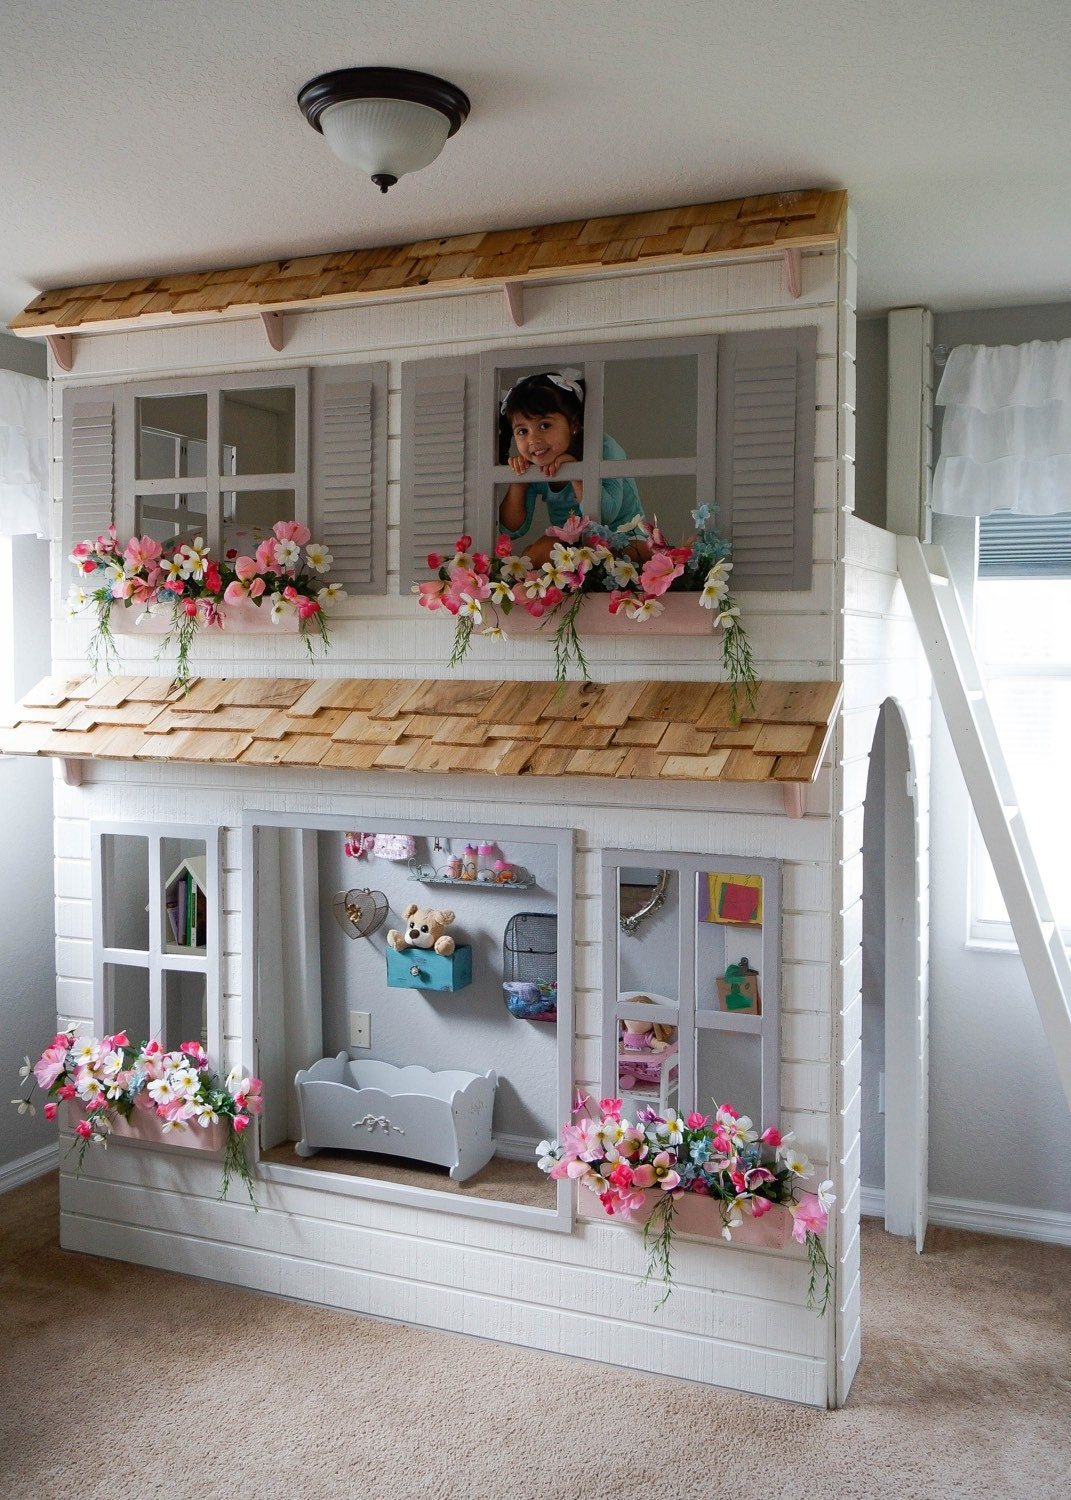 House Bunk Bed Custom Dollhouse Cottage Loft Bed Pick Your Colors Play